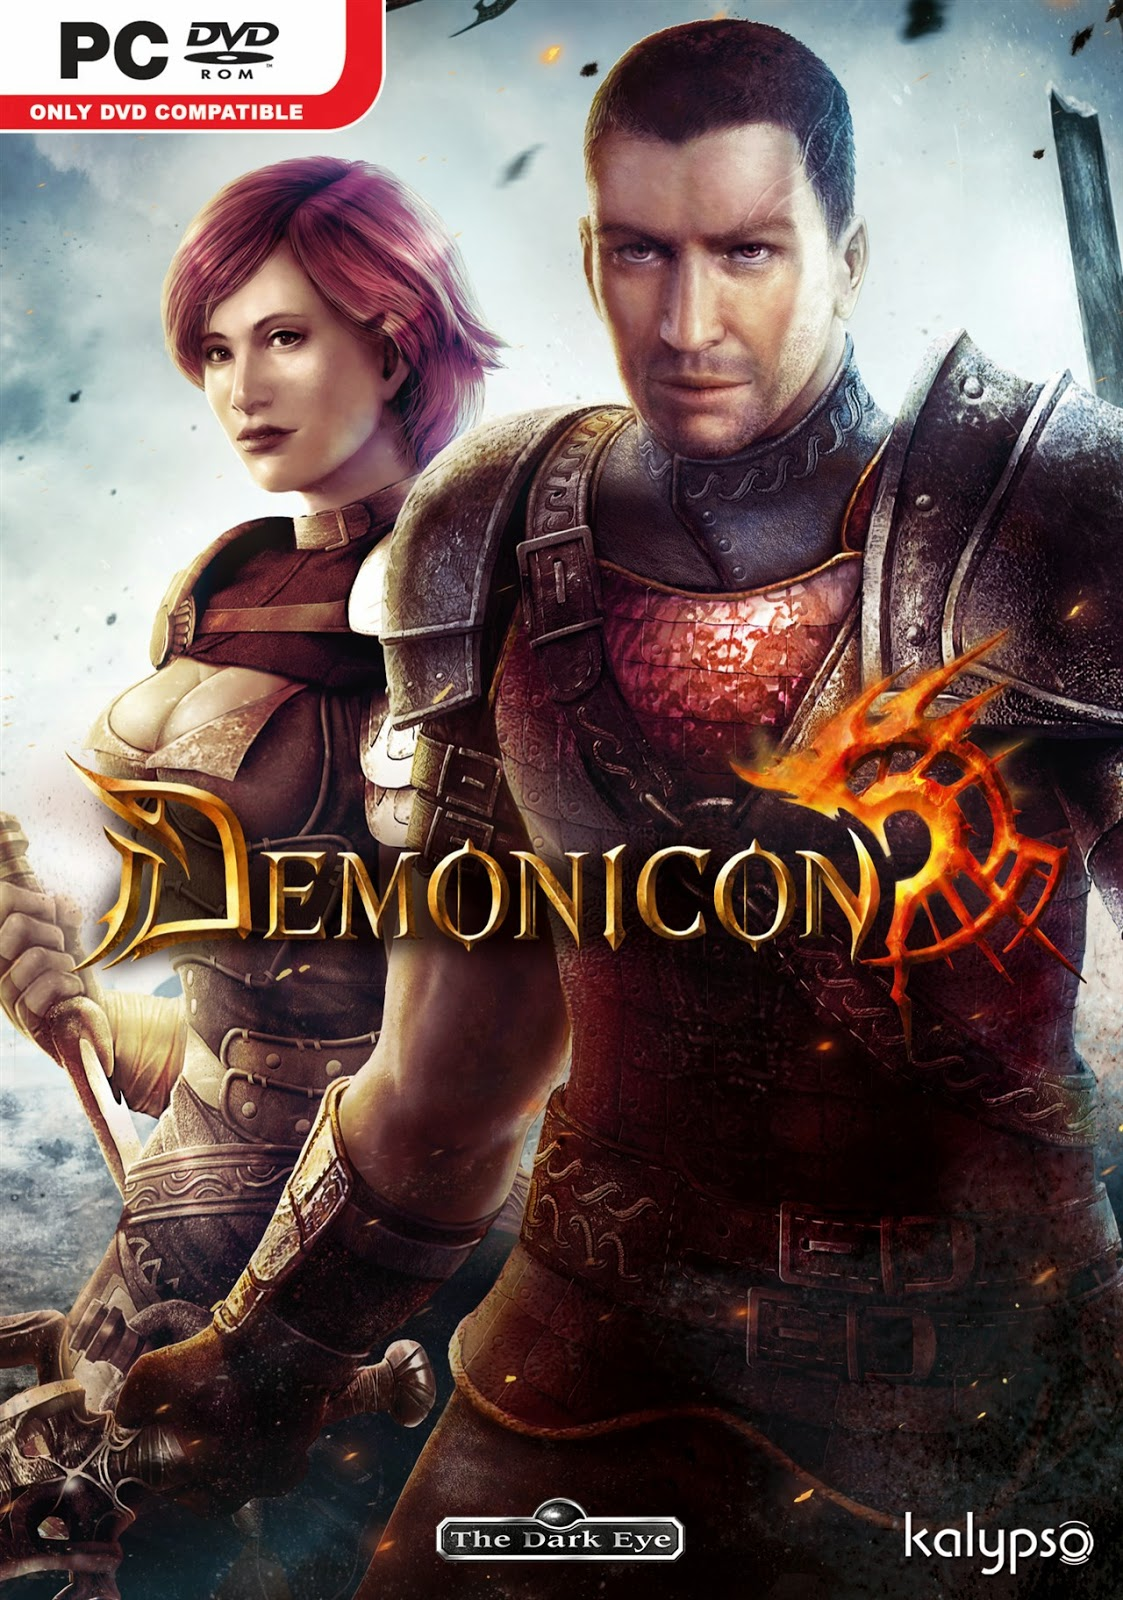 The Dark Eye Demonicon PC Download